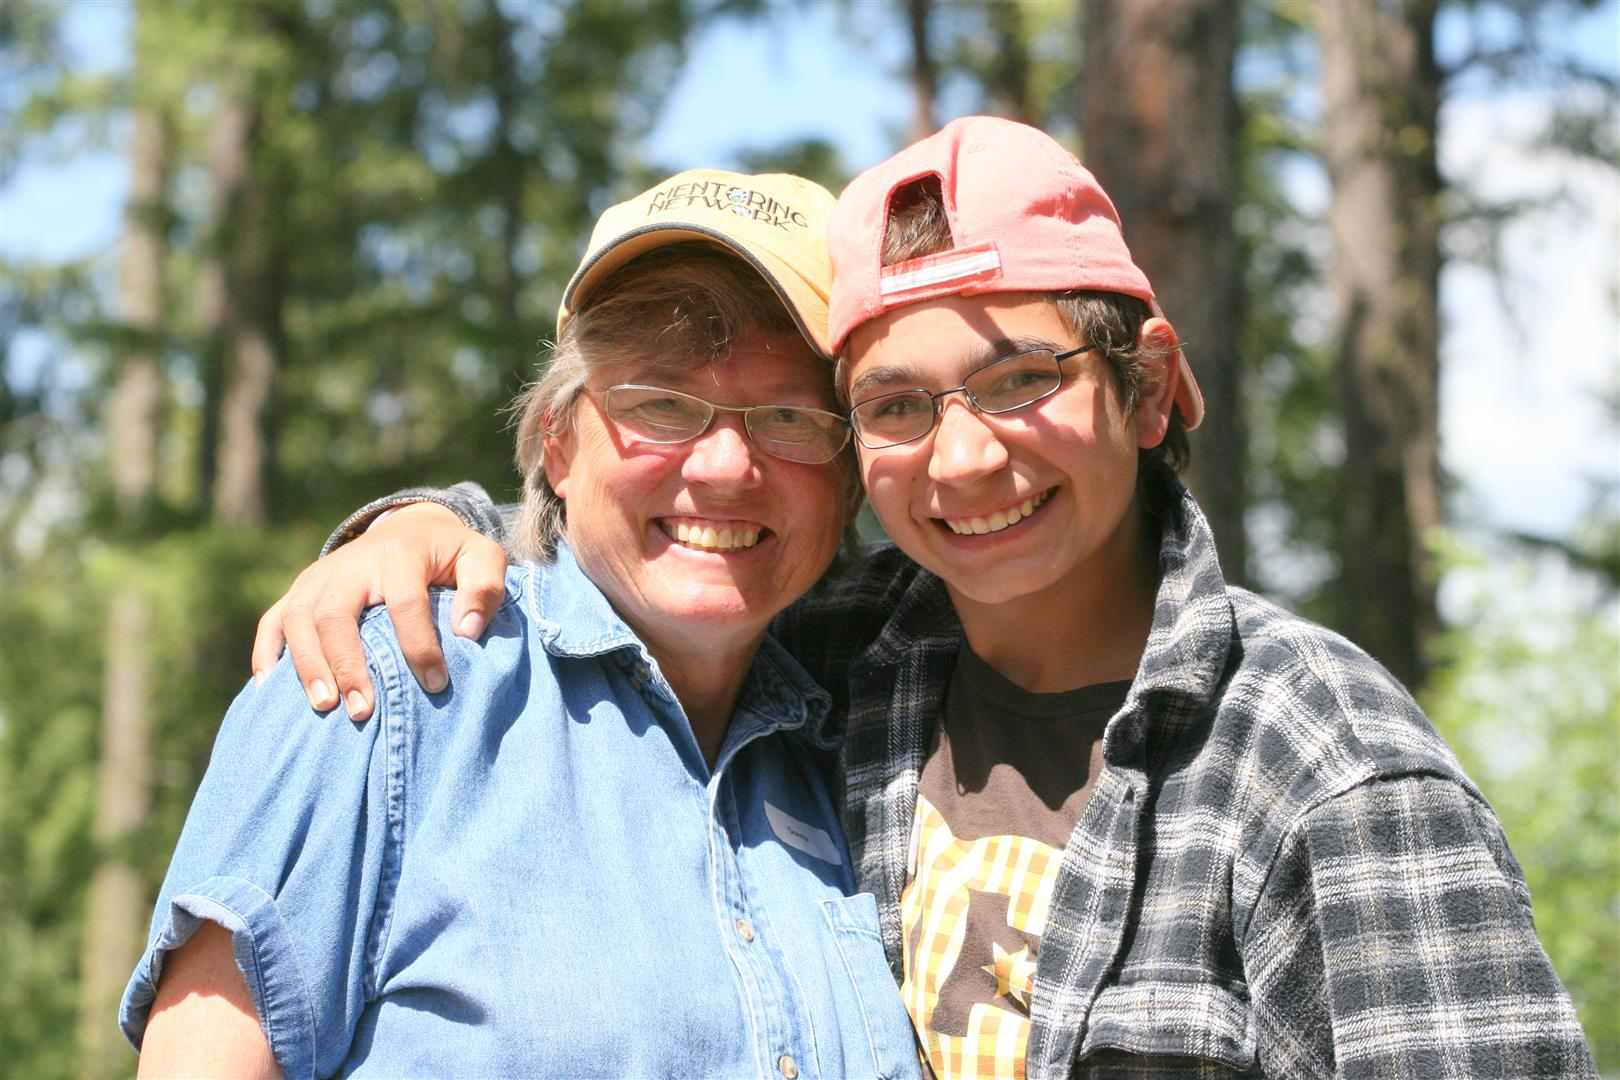 The Mentoring Network in Canyon County pairs adults and kids to gain better outcomes for at-risk youth.